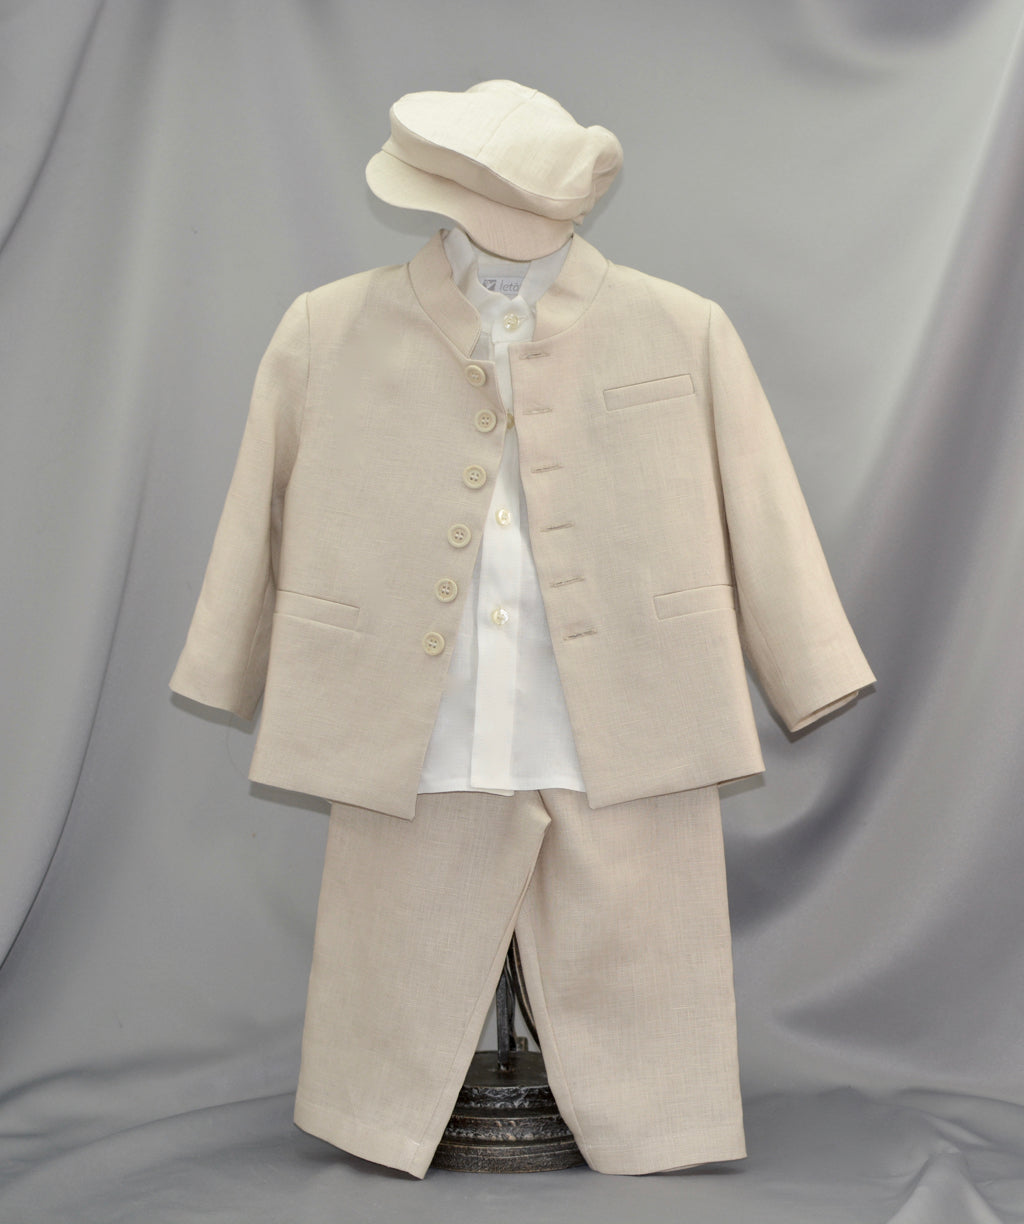 Theodoros Baptism Outfit